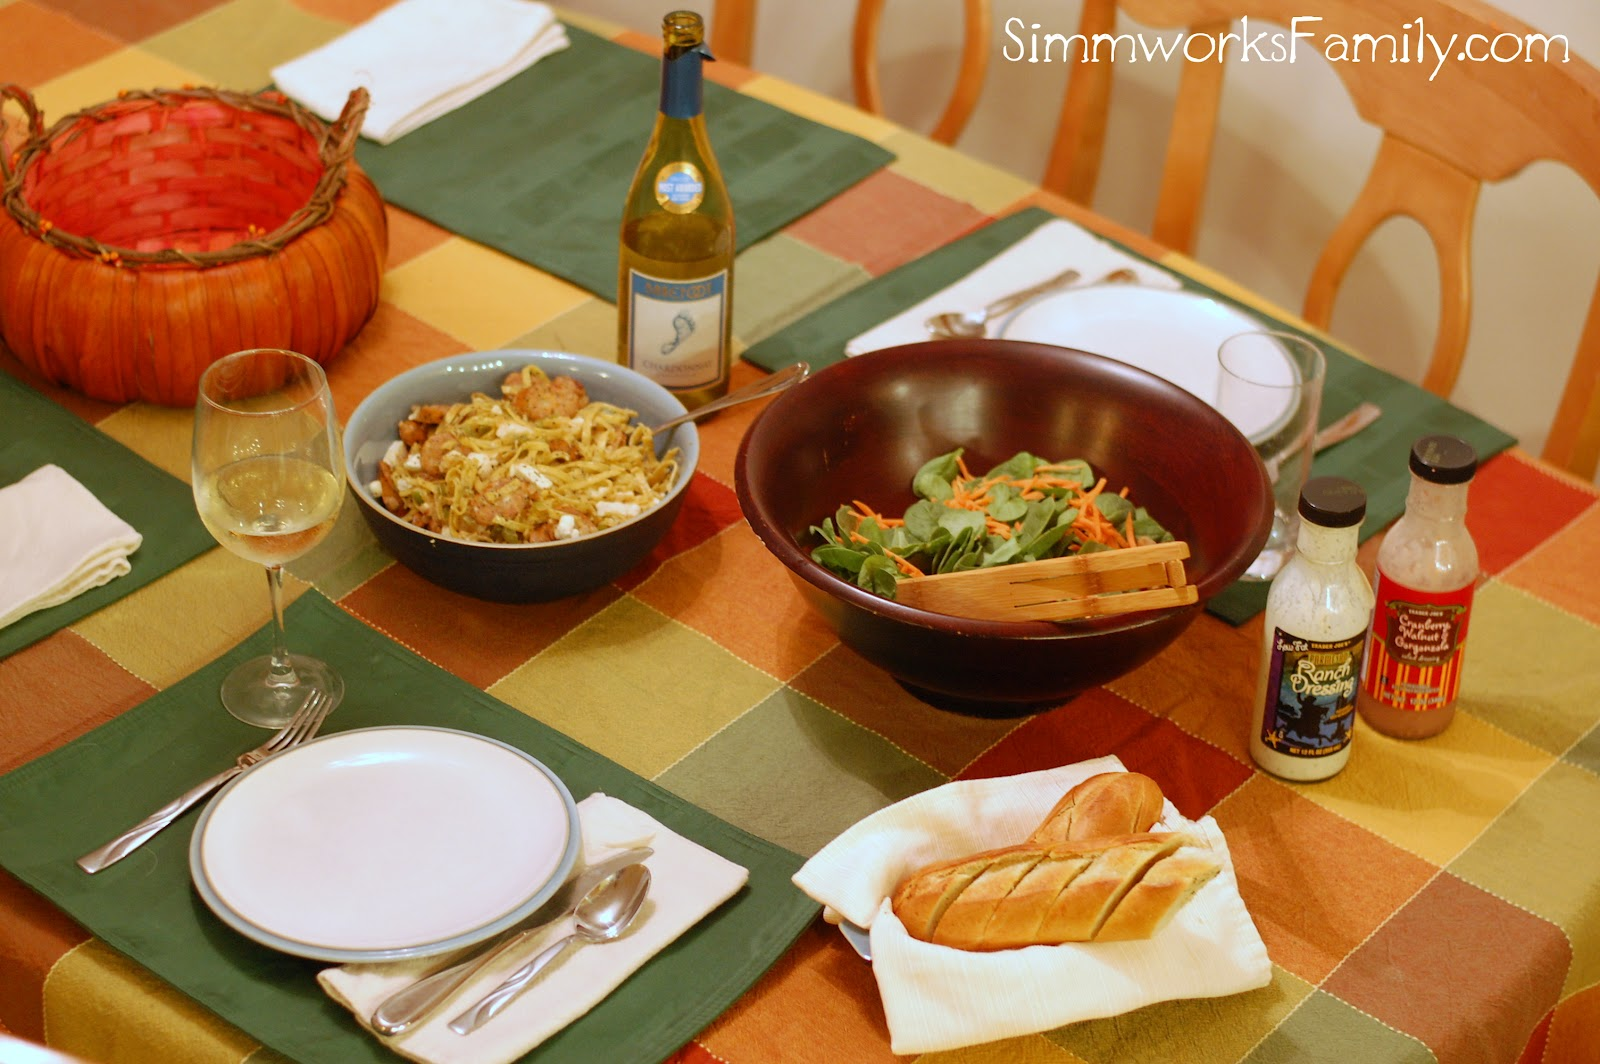 Date Night on a Budget Dinner for $20